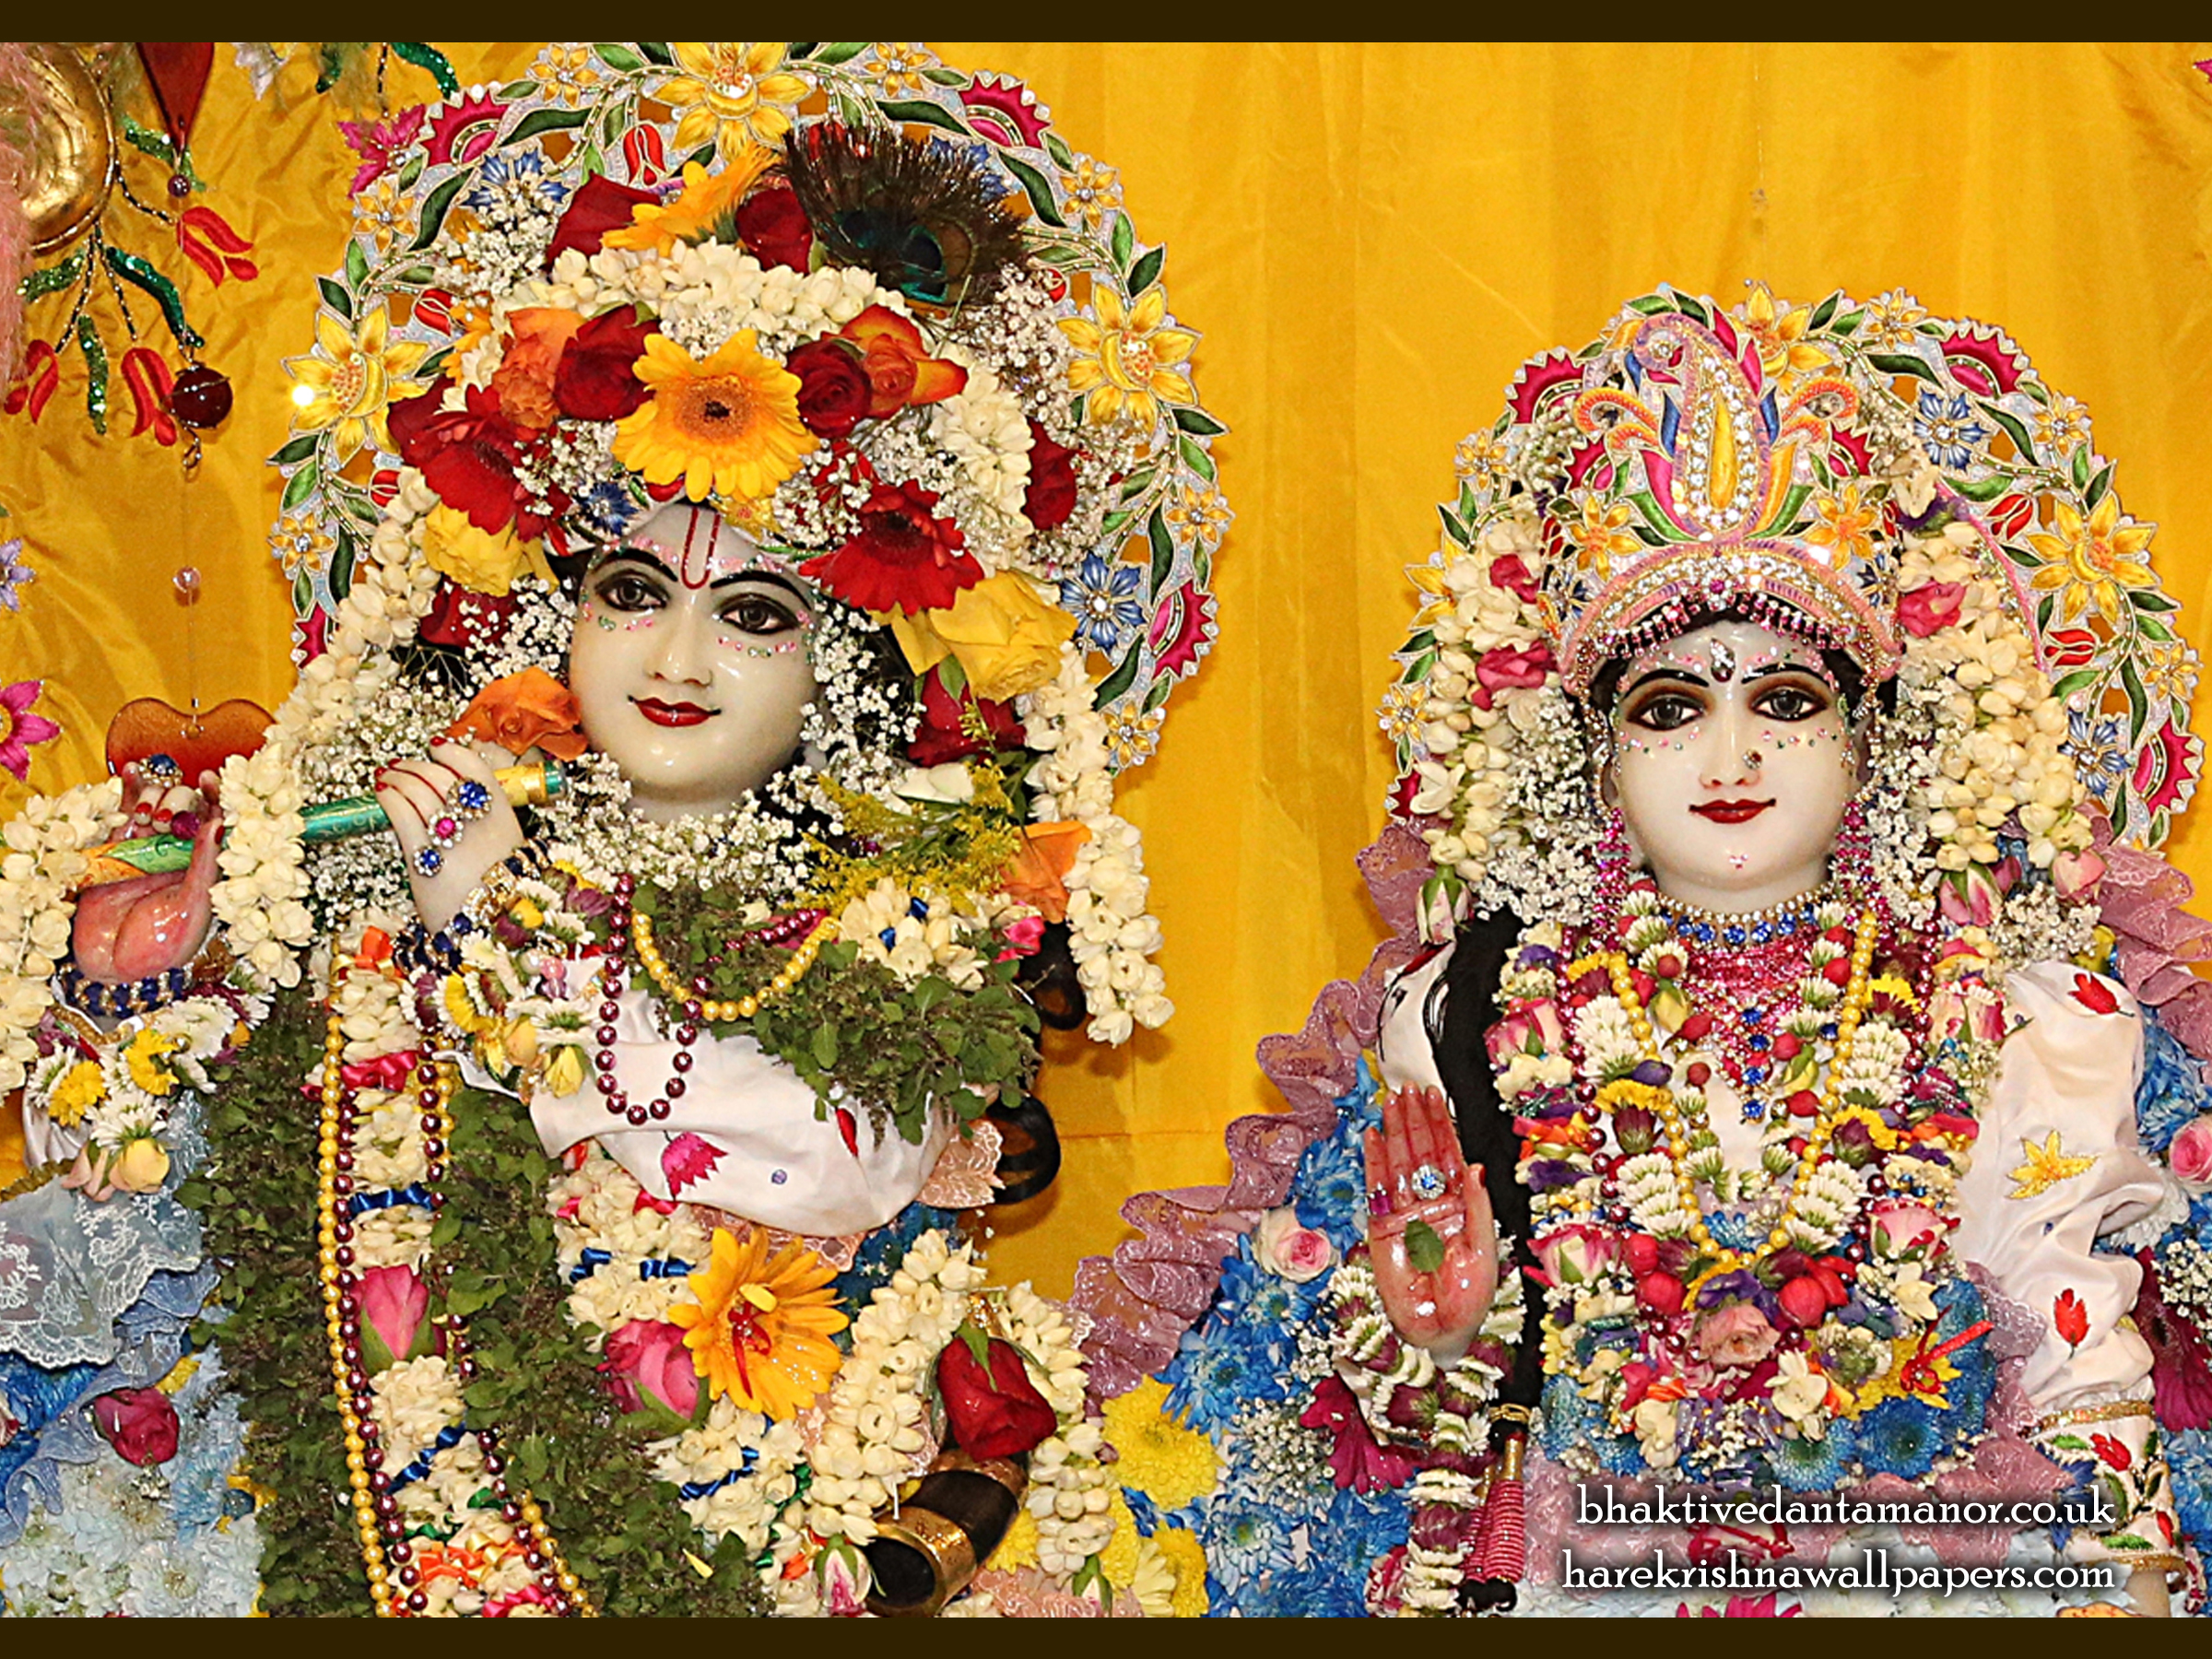 Sri Sri Radha Gokulananda Close up Wallpaper (024) Size 2400x1800 Download